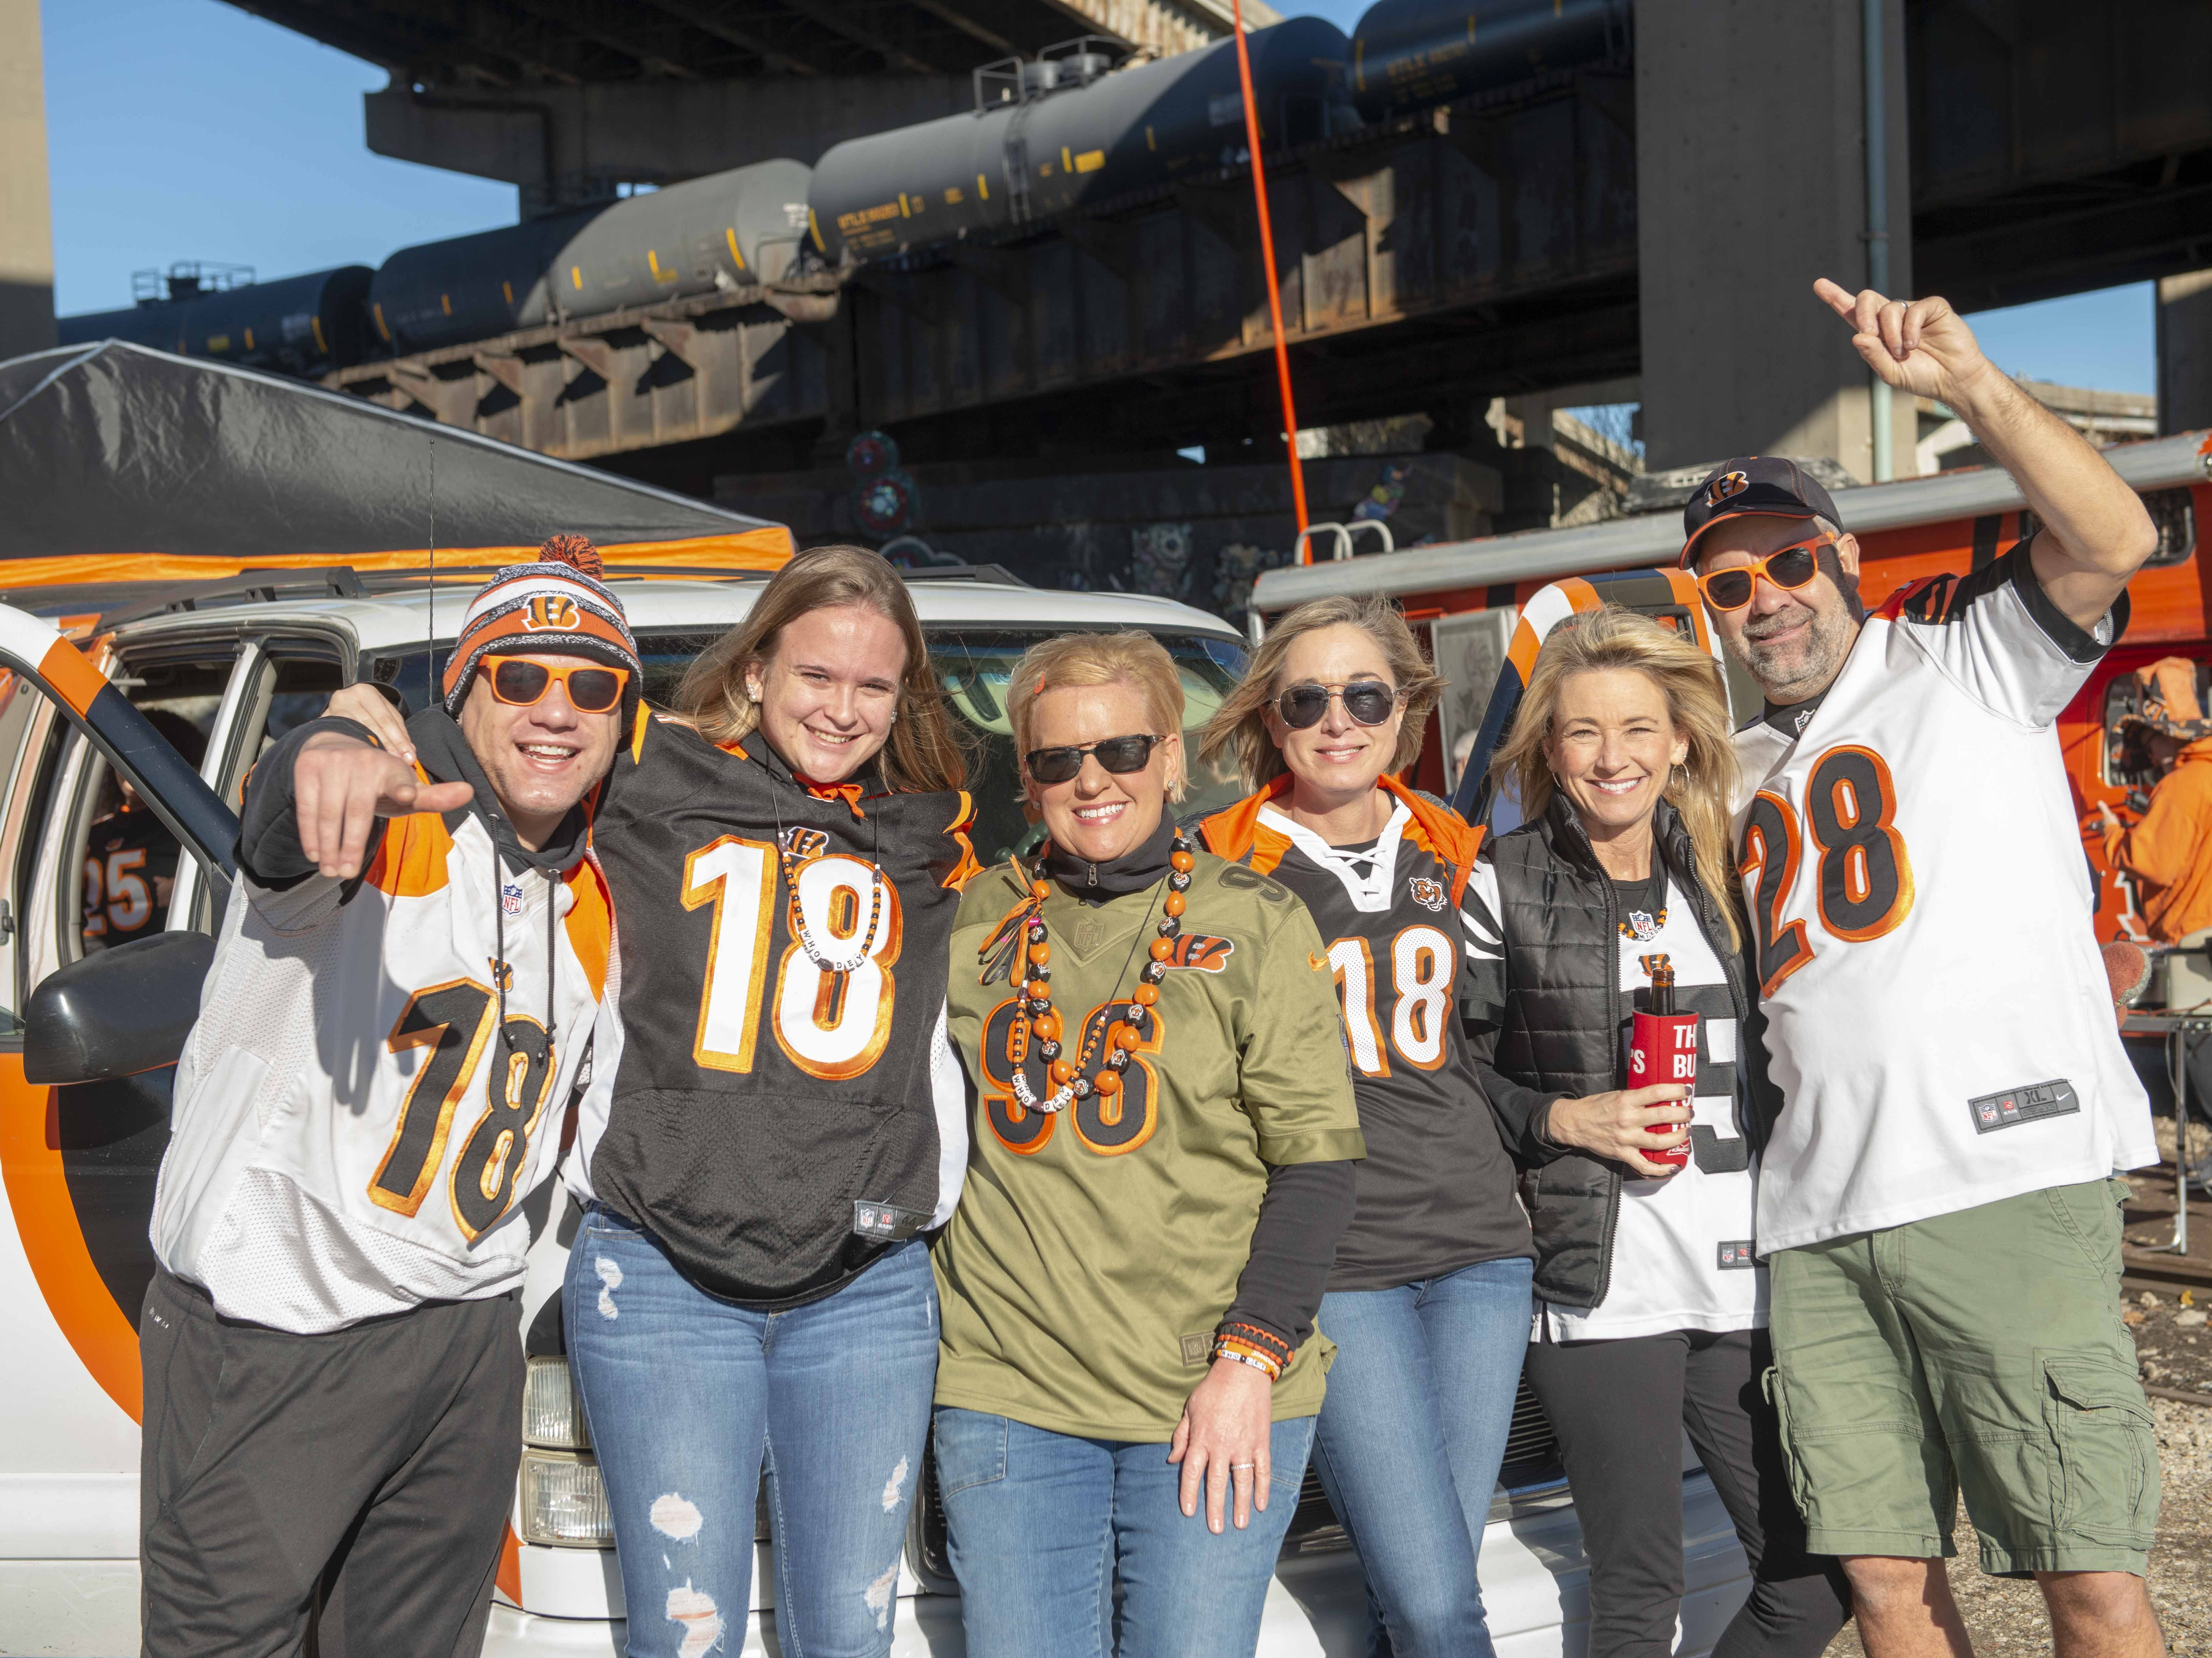 Cincinnati Bengals fans showed up for tailgating parties as the Cincinnati Bengals hosted the Denver Broncos at Paul Brown Stadium Sunday, December 2, 2018. The Jungle Juice from Cass Town, OH.